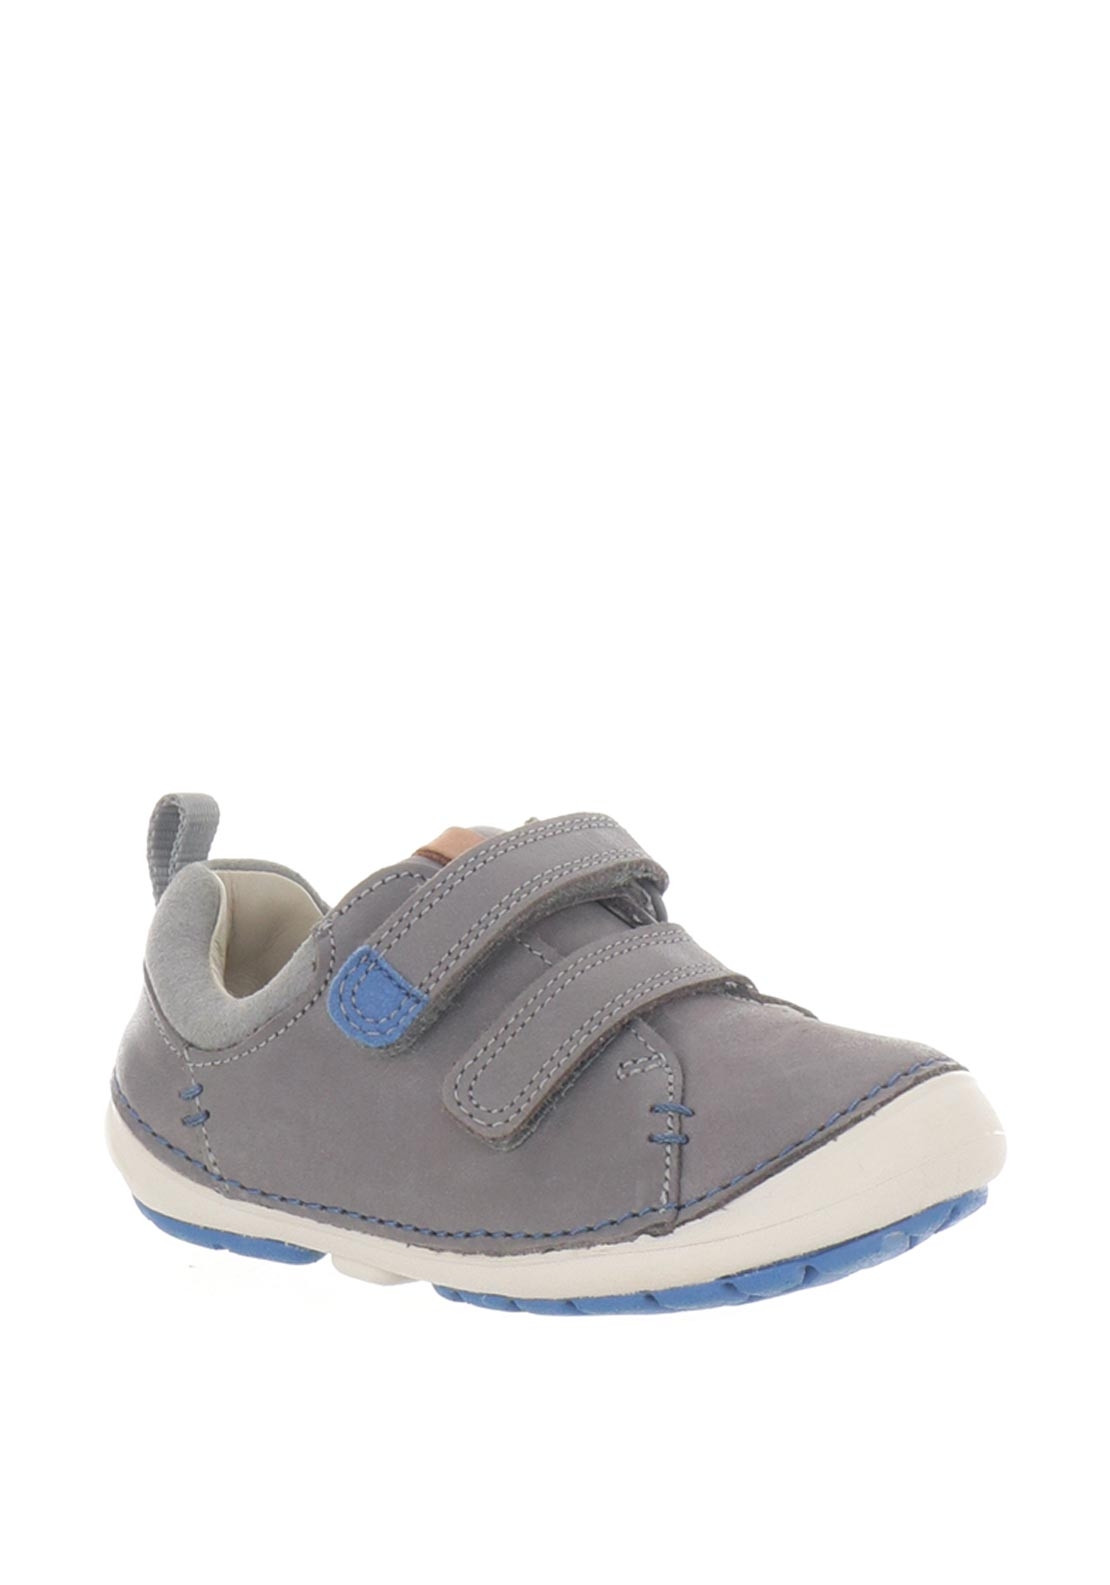 1056a097 Clarks Boys Softly Toby Leather First Shoes, Grey